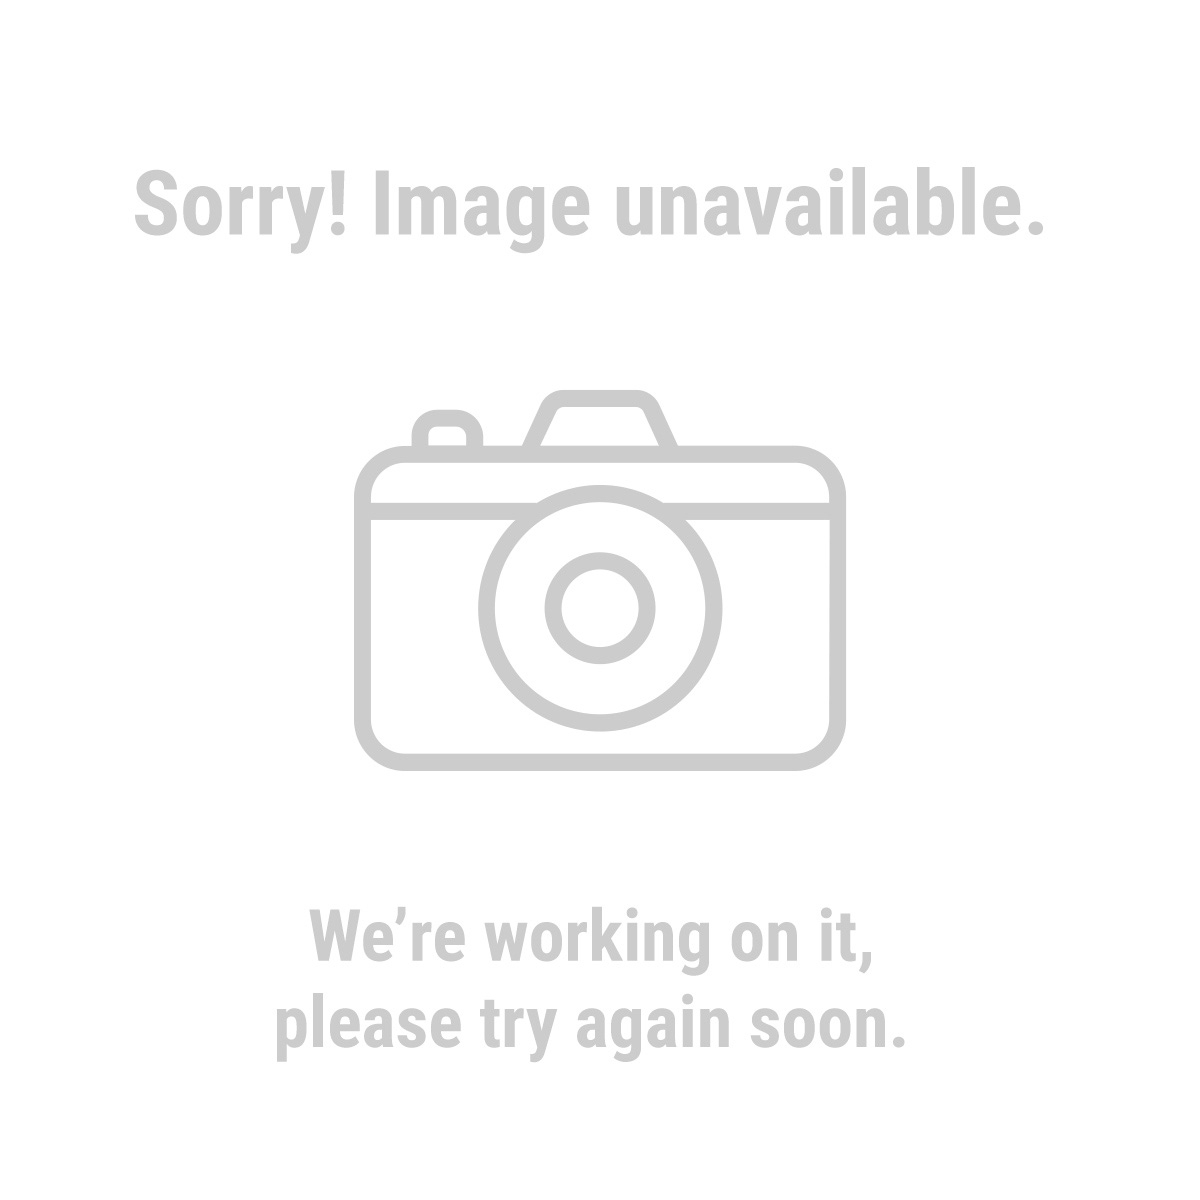 Central Pneumatic® 98751 3-in-1 Air Framing Nailer